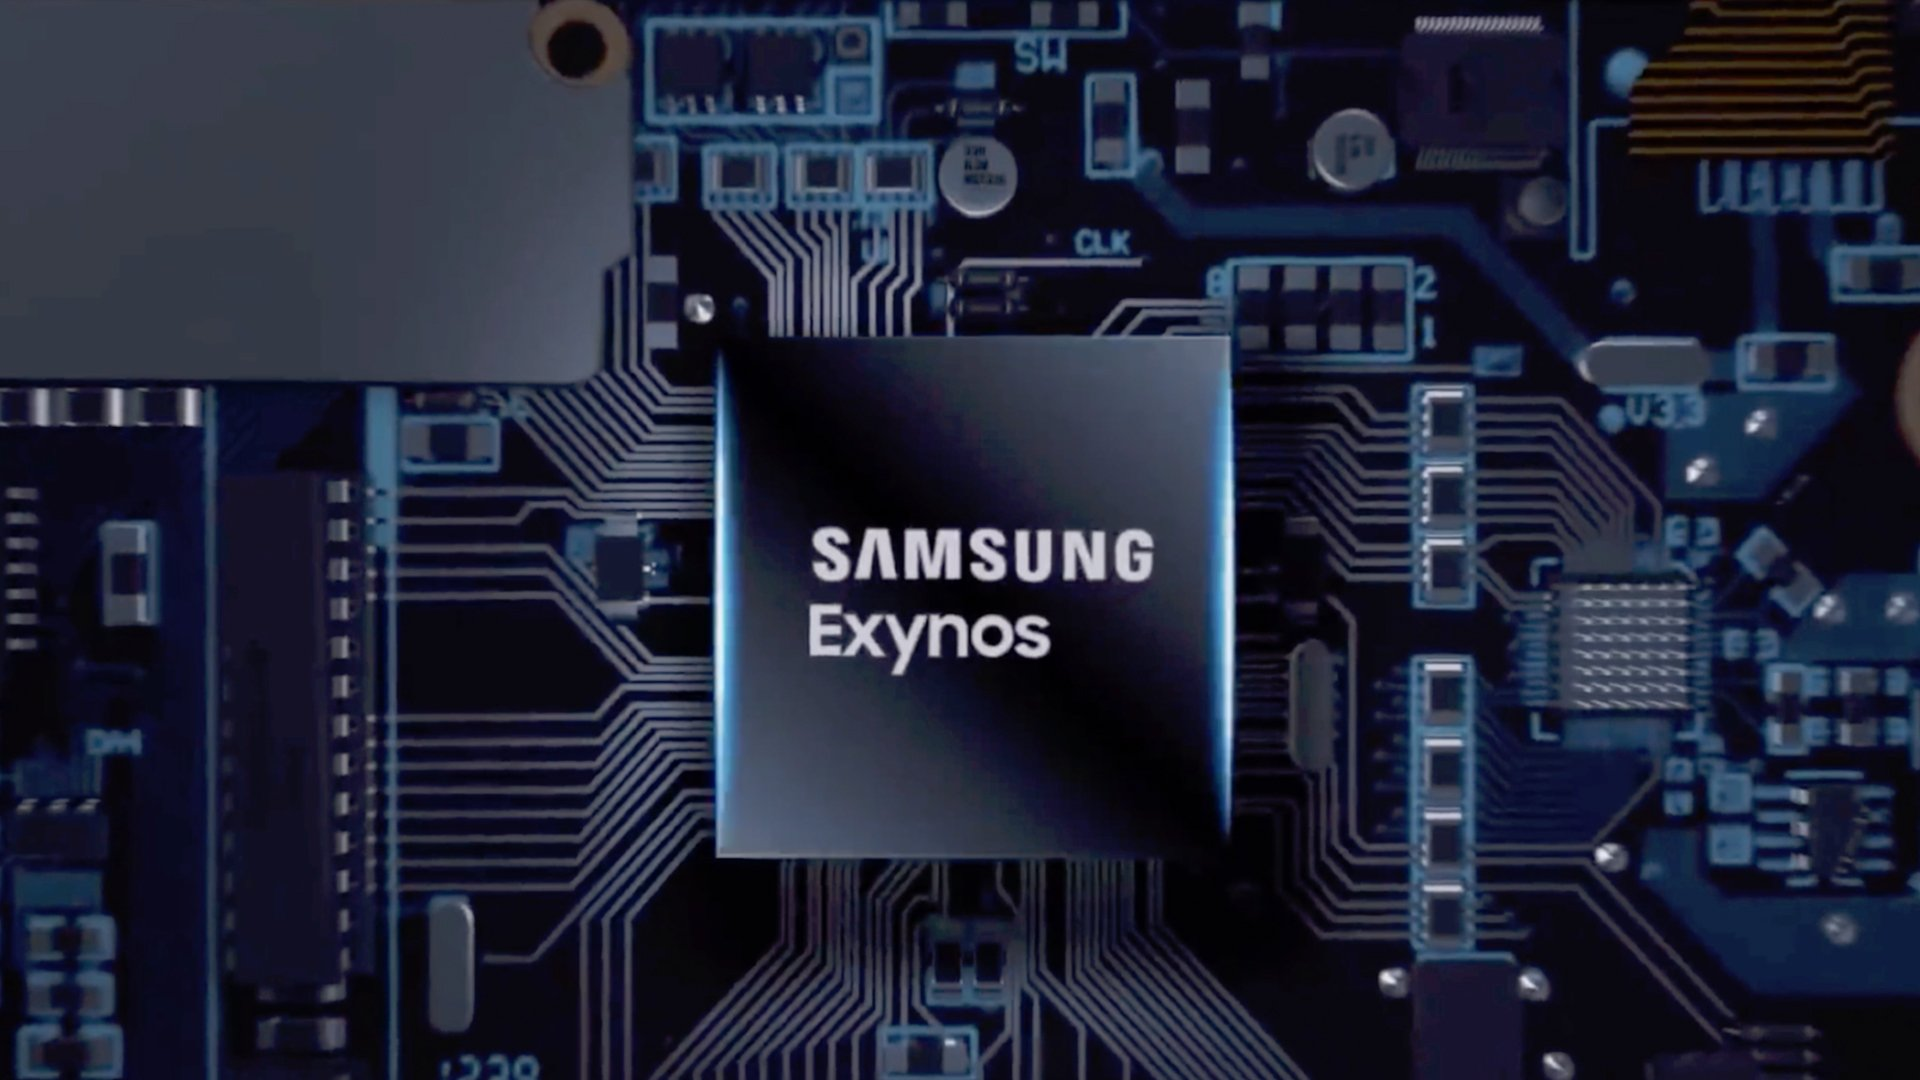 Leaked Exynos 880 specs show it as underclocked version of Exynos